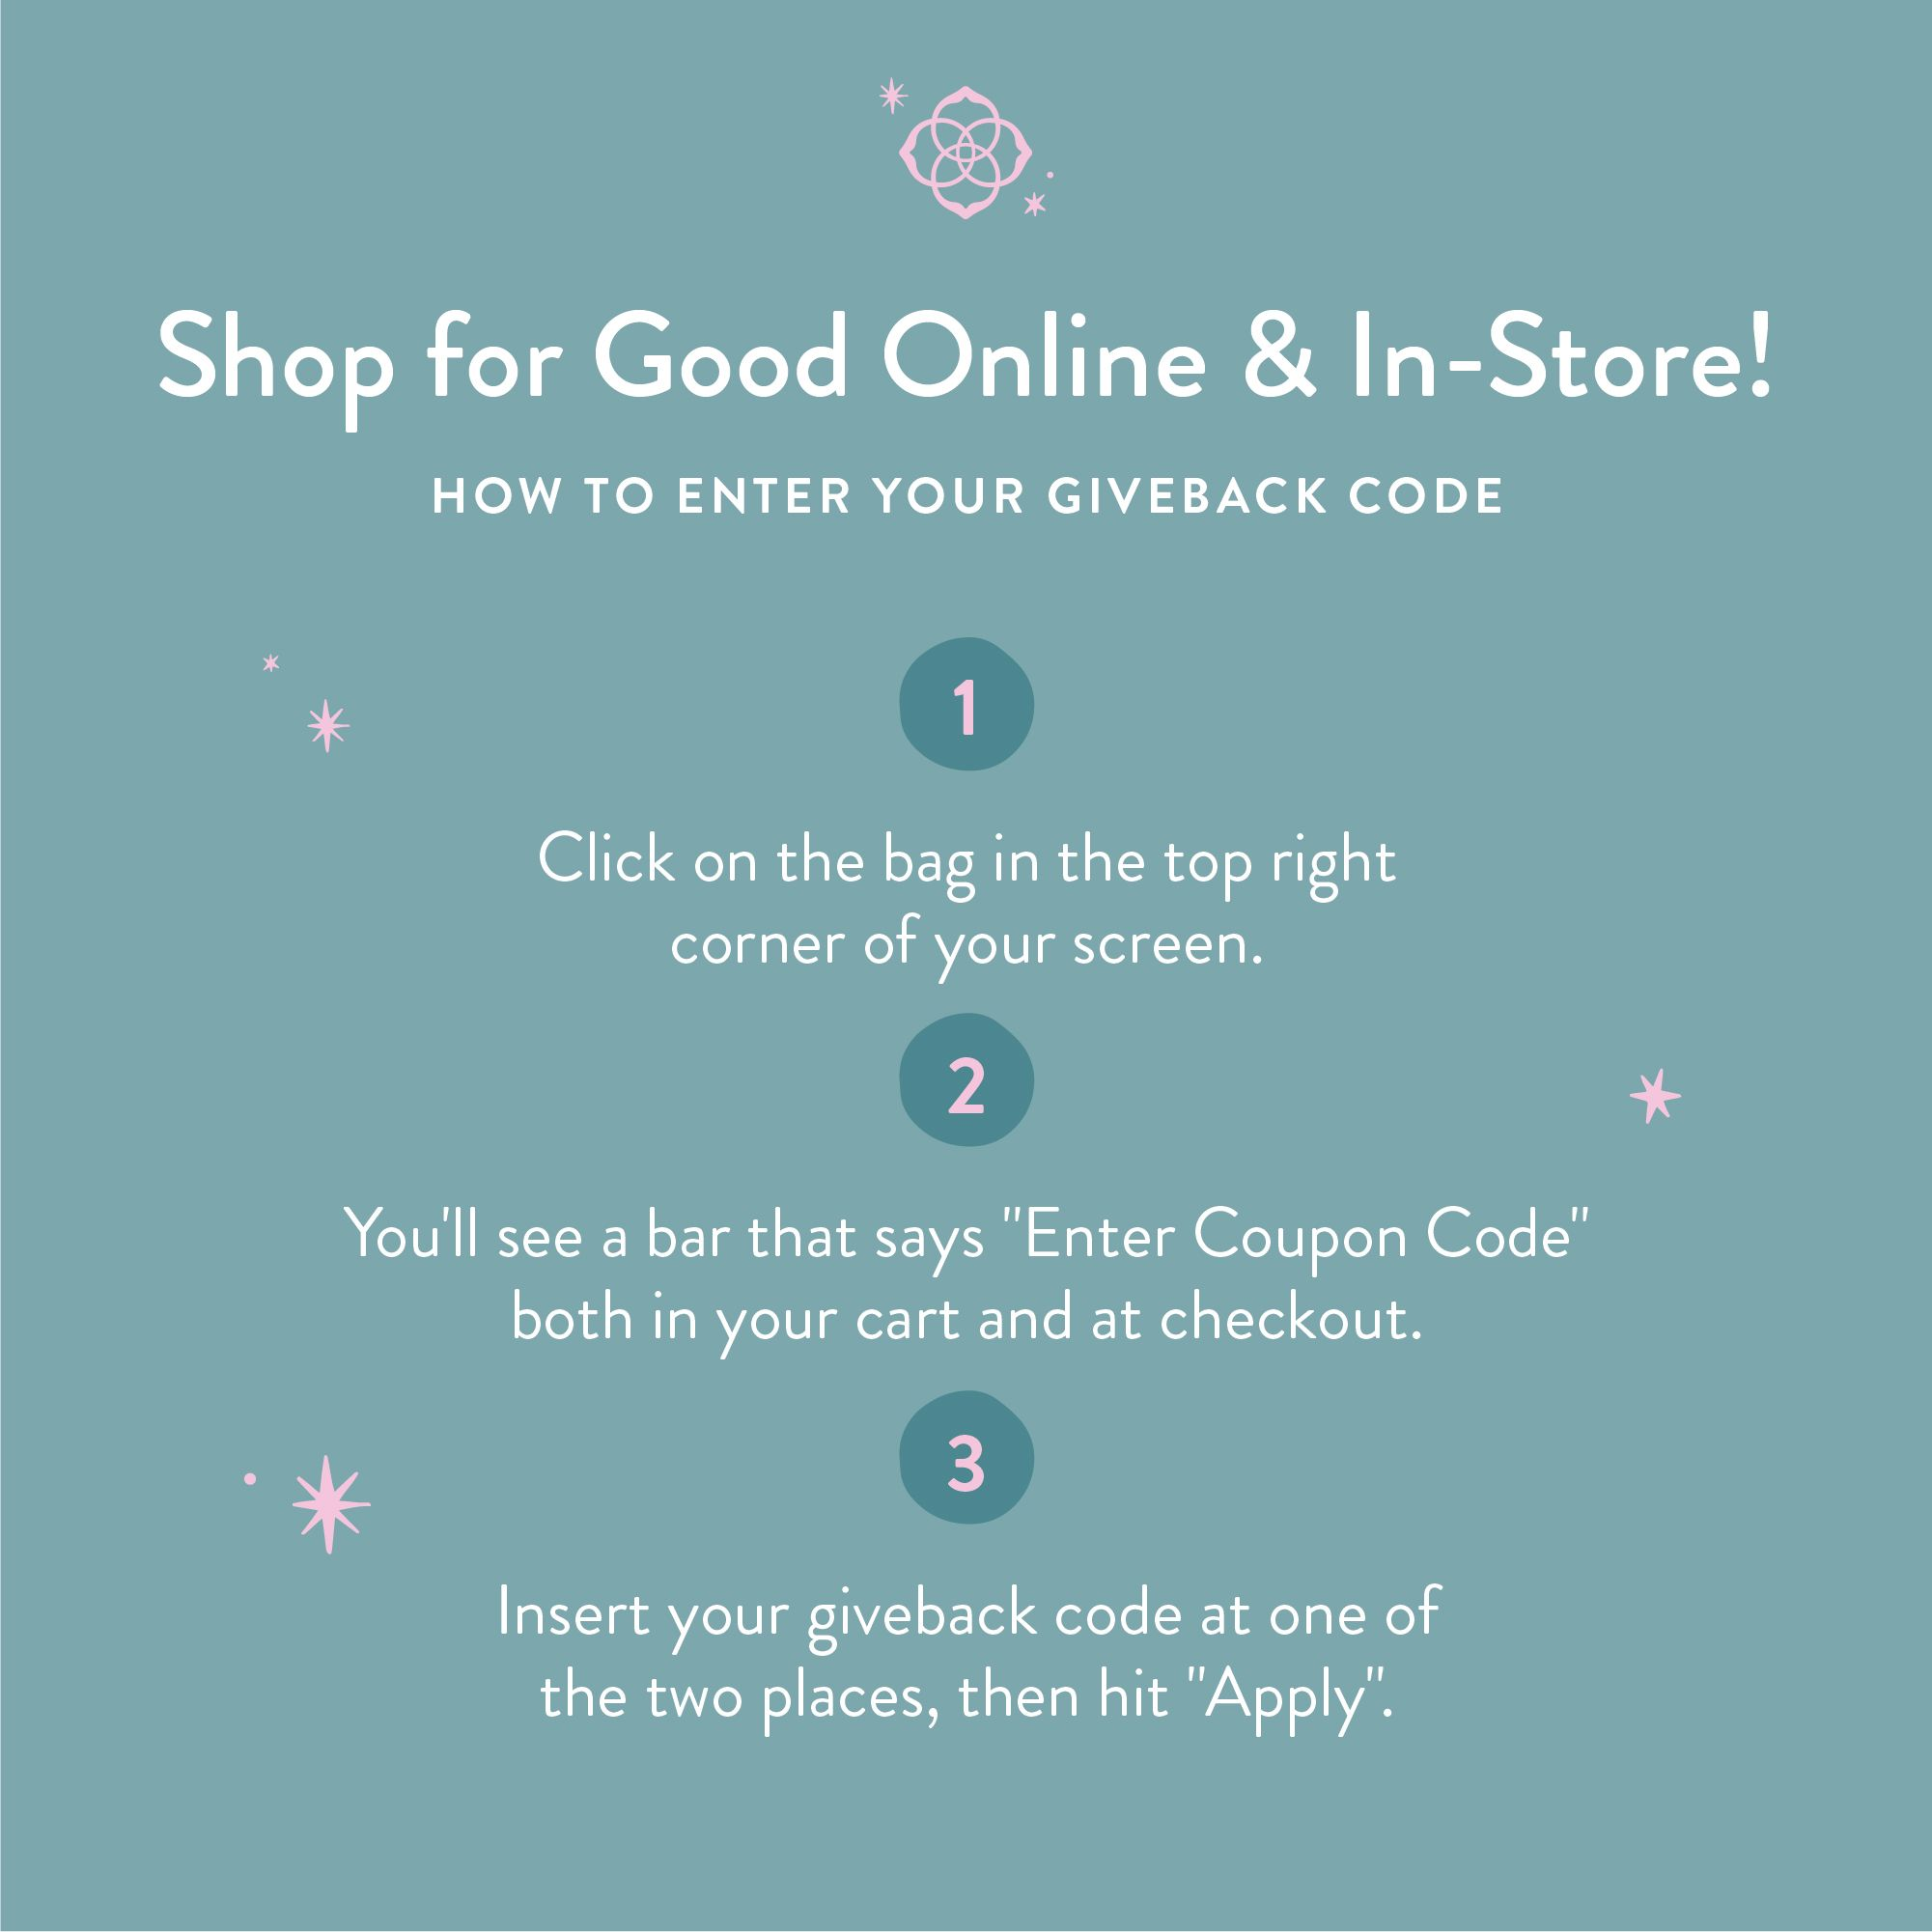 Shop for Good Online & In-Store at Kendra Scott!